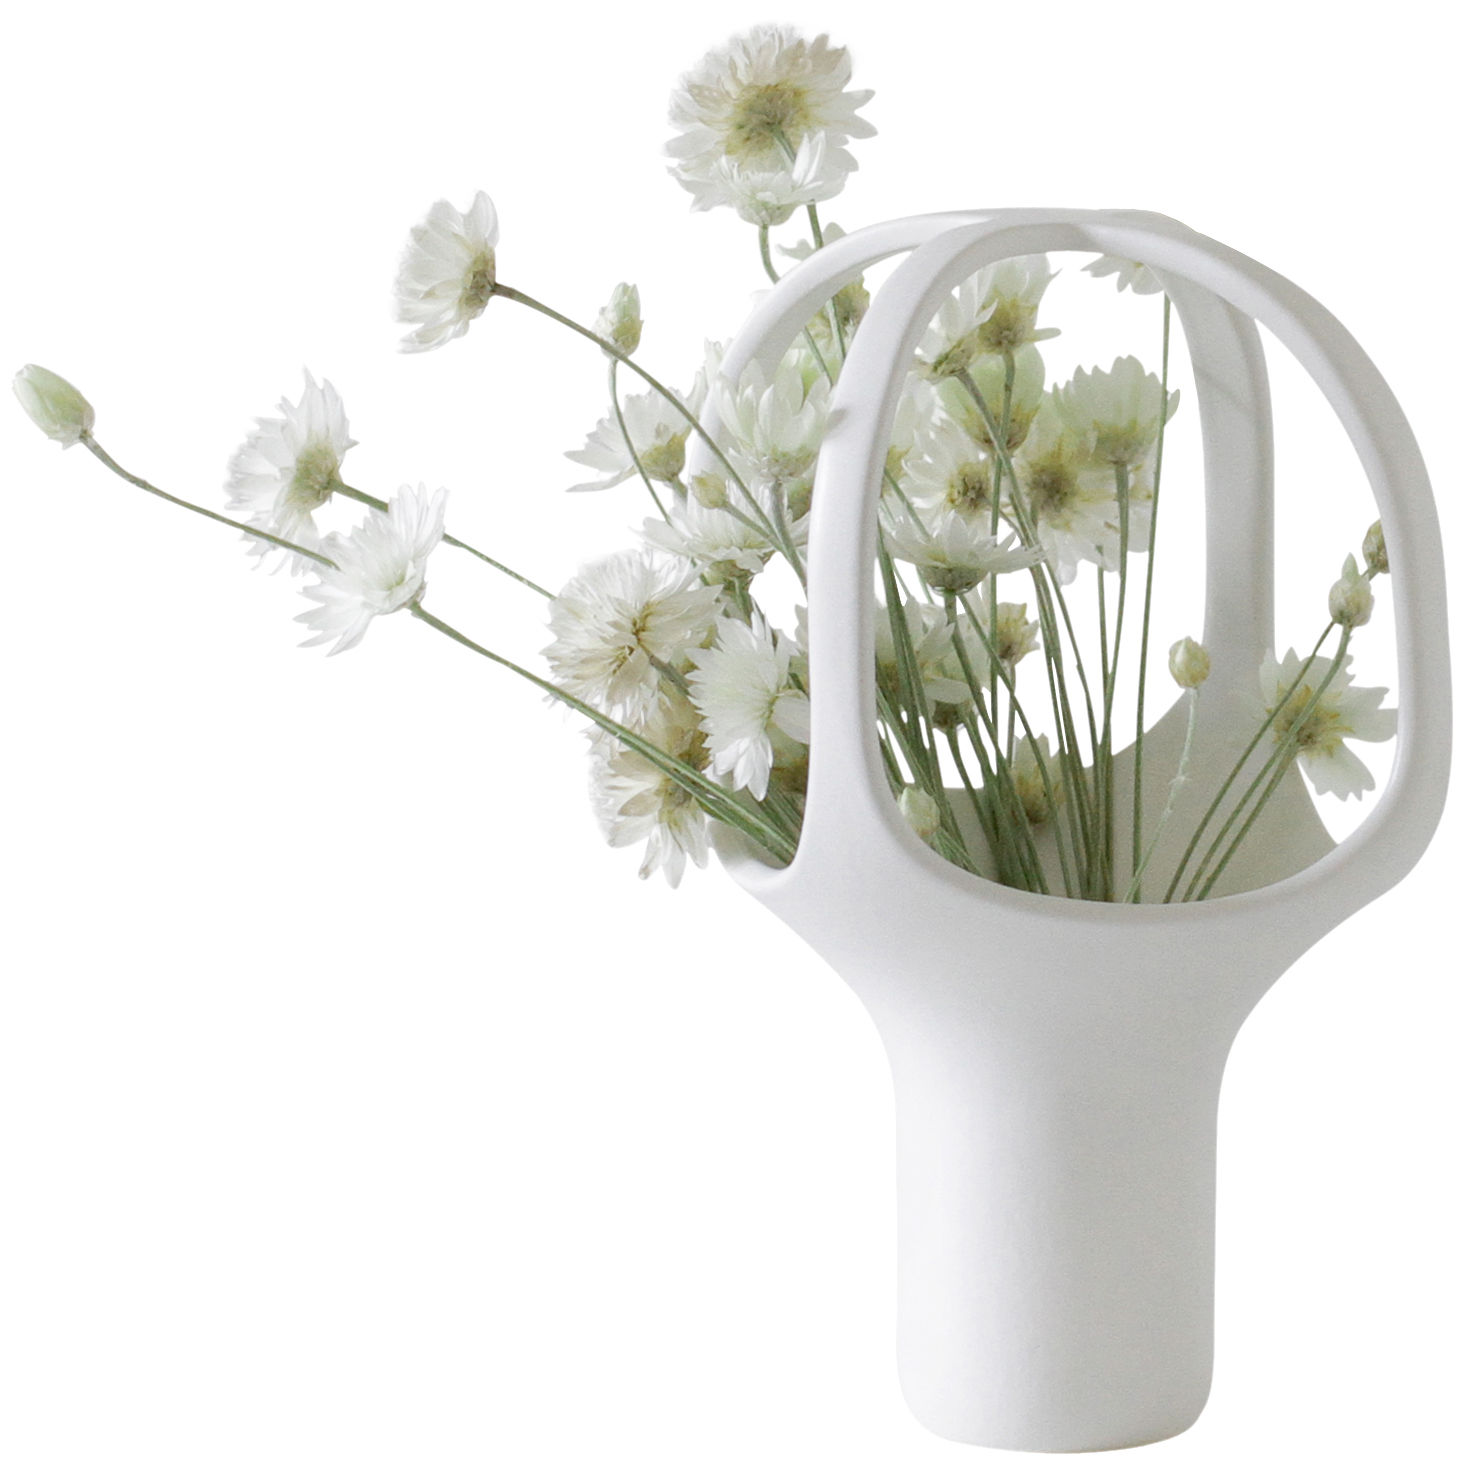 vase heirloom n 1 h 25 cm blanc moustache made in design. Black Bedroom Furniture Sets. Home Design Ideas